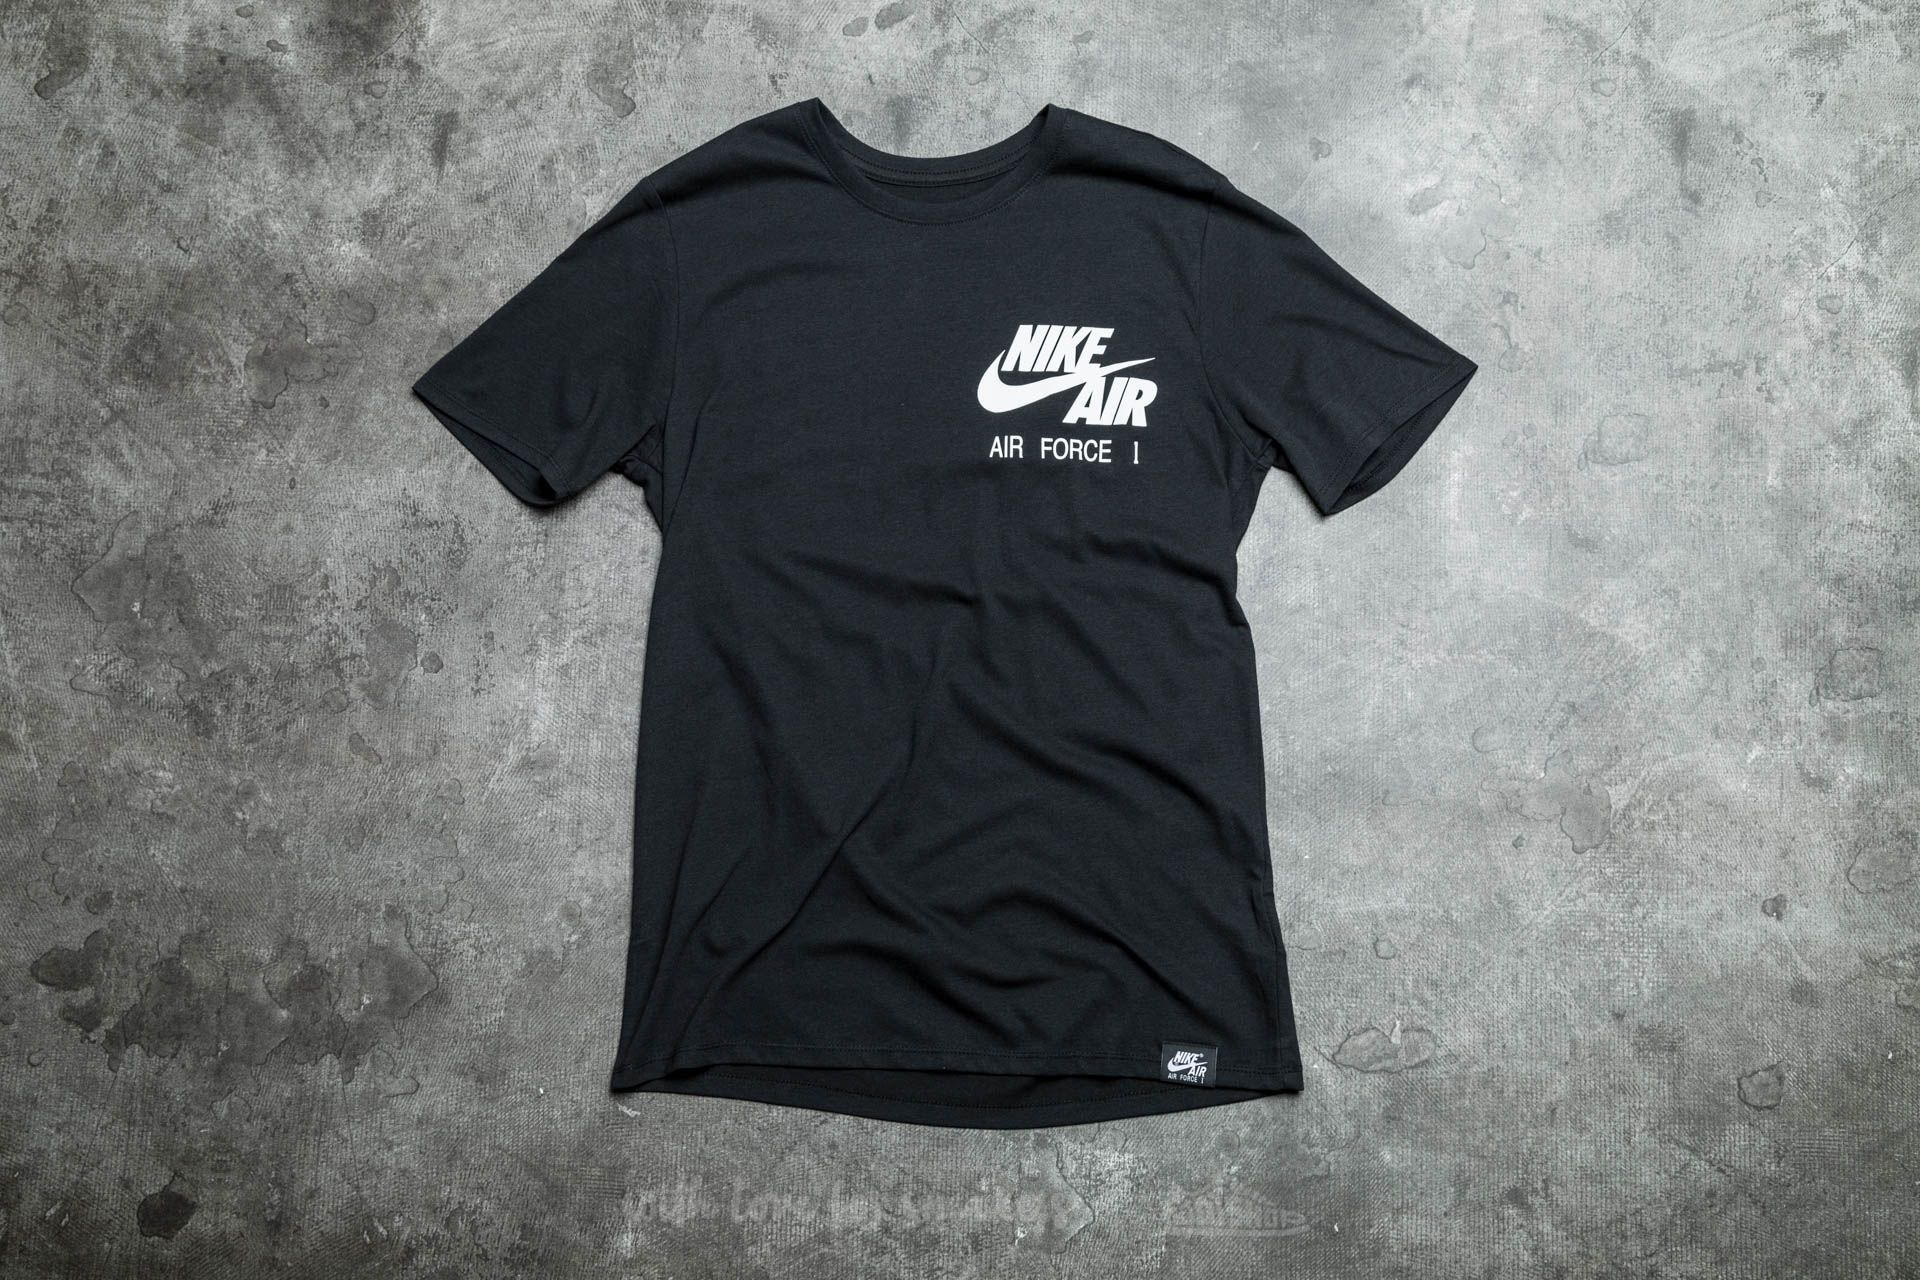 Nike Sportswear Air Force 1 Uptown's Finest Tee Black/ White